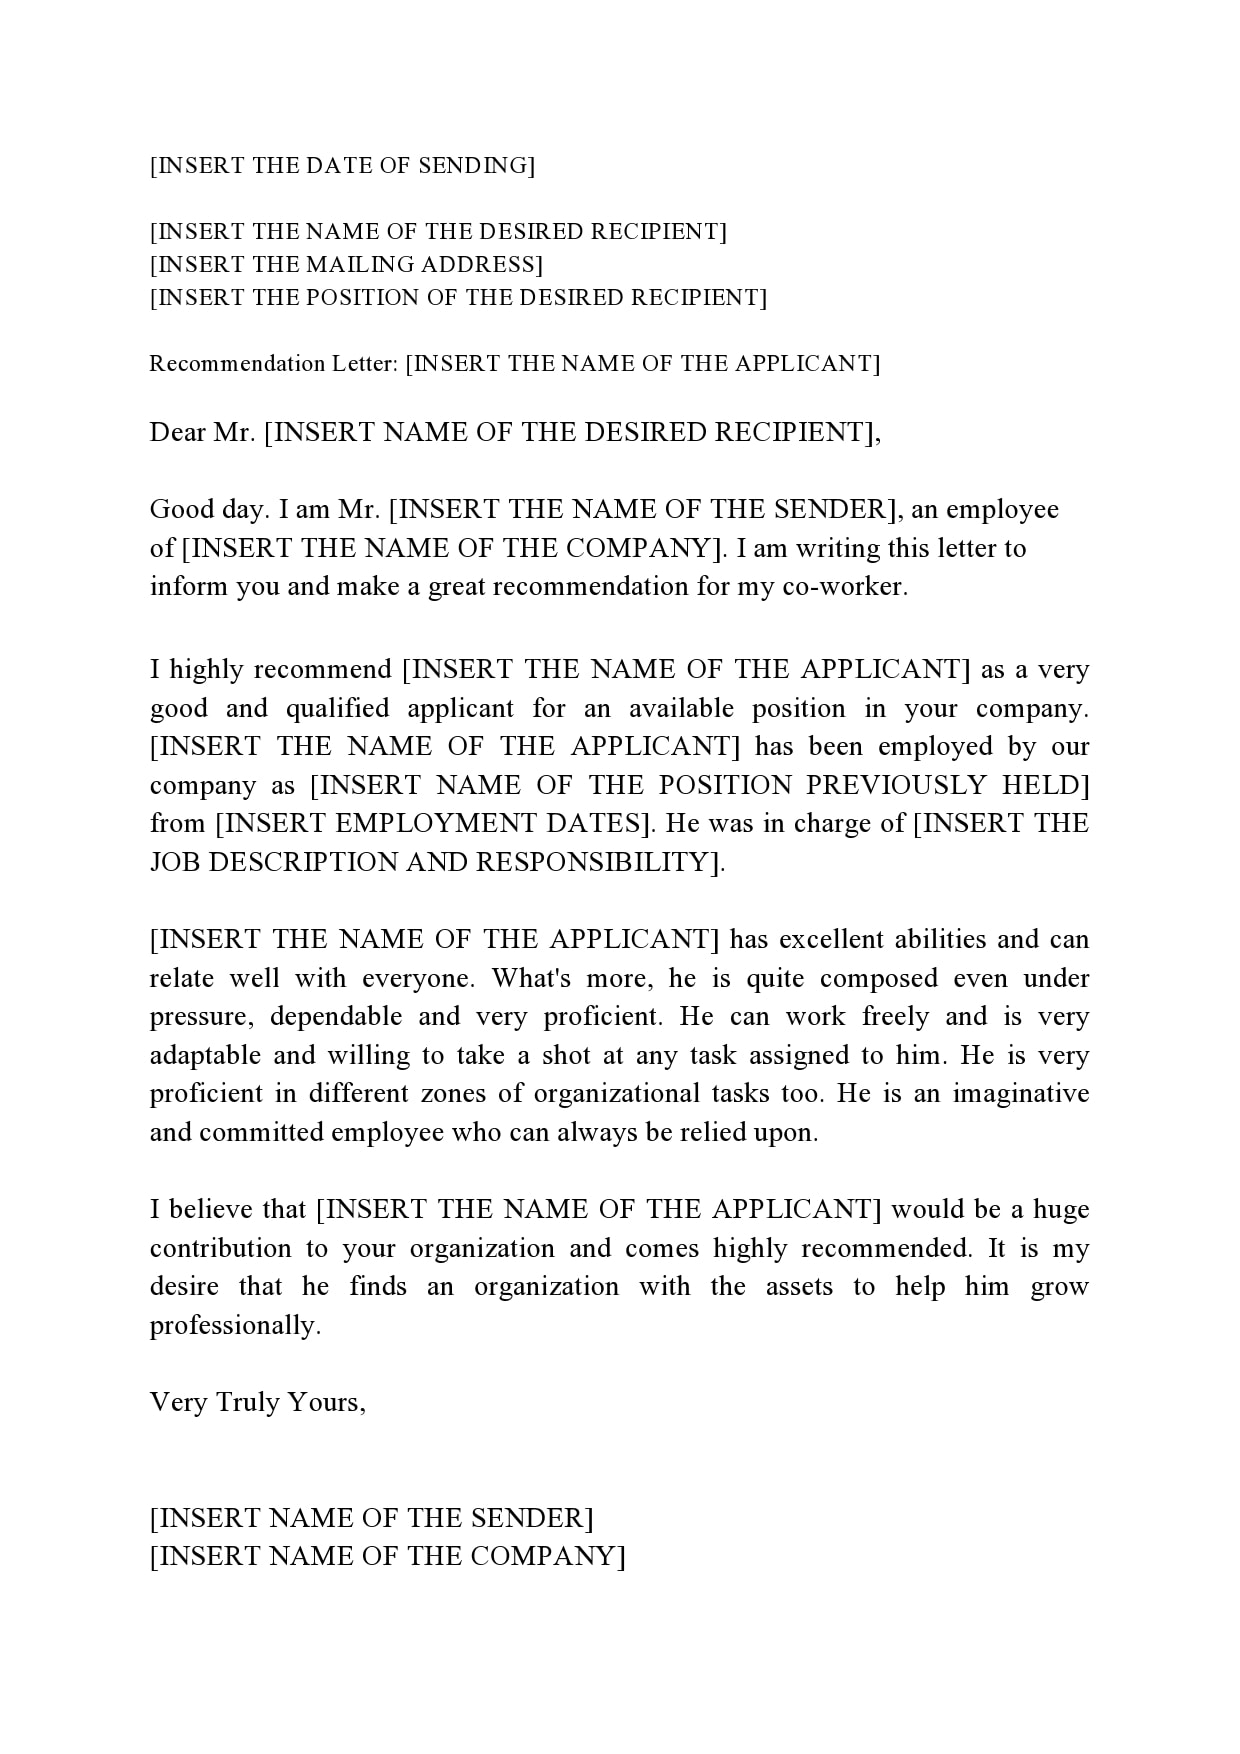 Recommendation Letter For Coworker from templatearchive.com